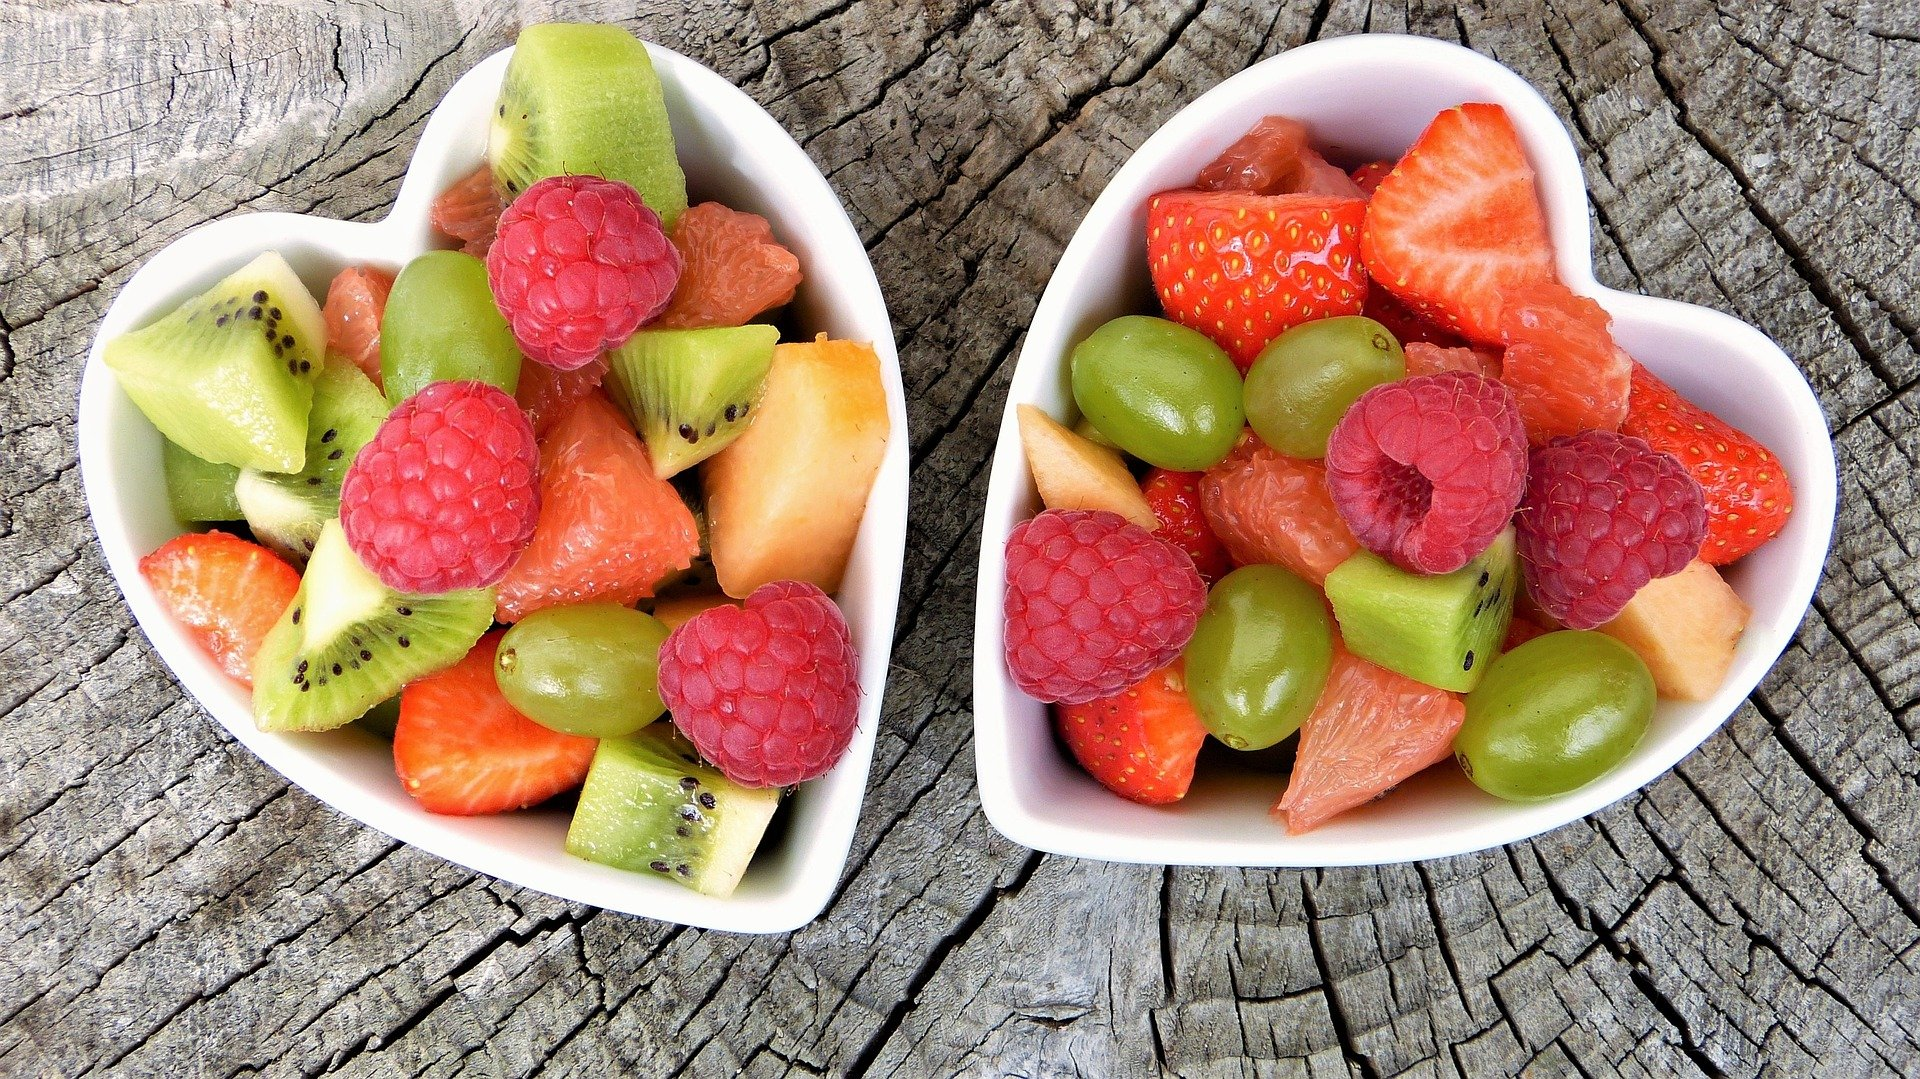 Top 10 Healthy Foods To Keep You Fit